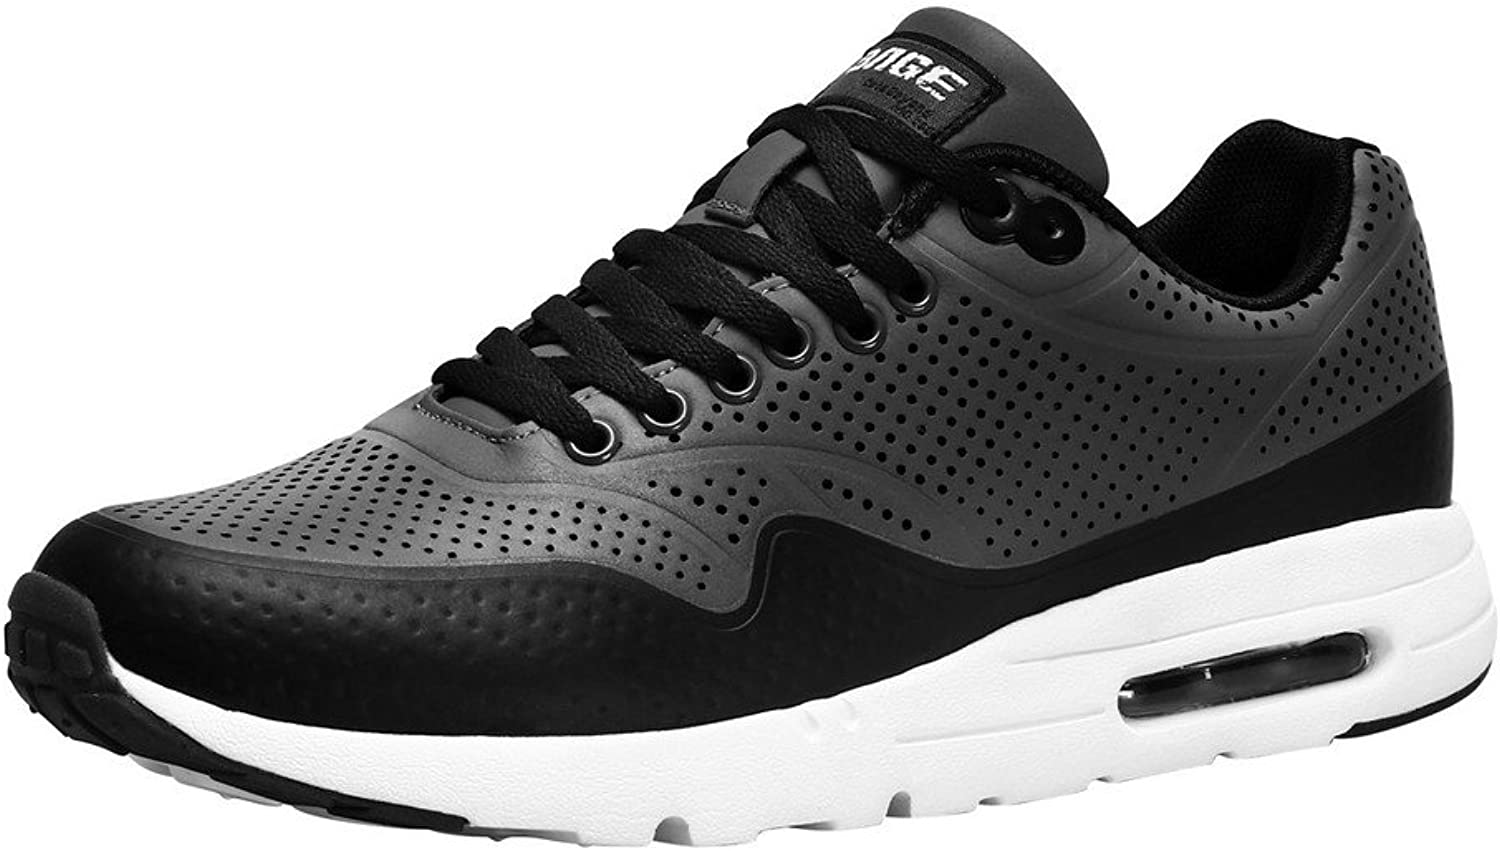 Men's Antislip Running shoes Sport Gym Sneakers Jogger Training shoes